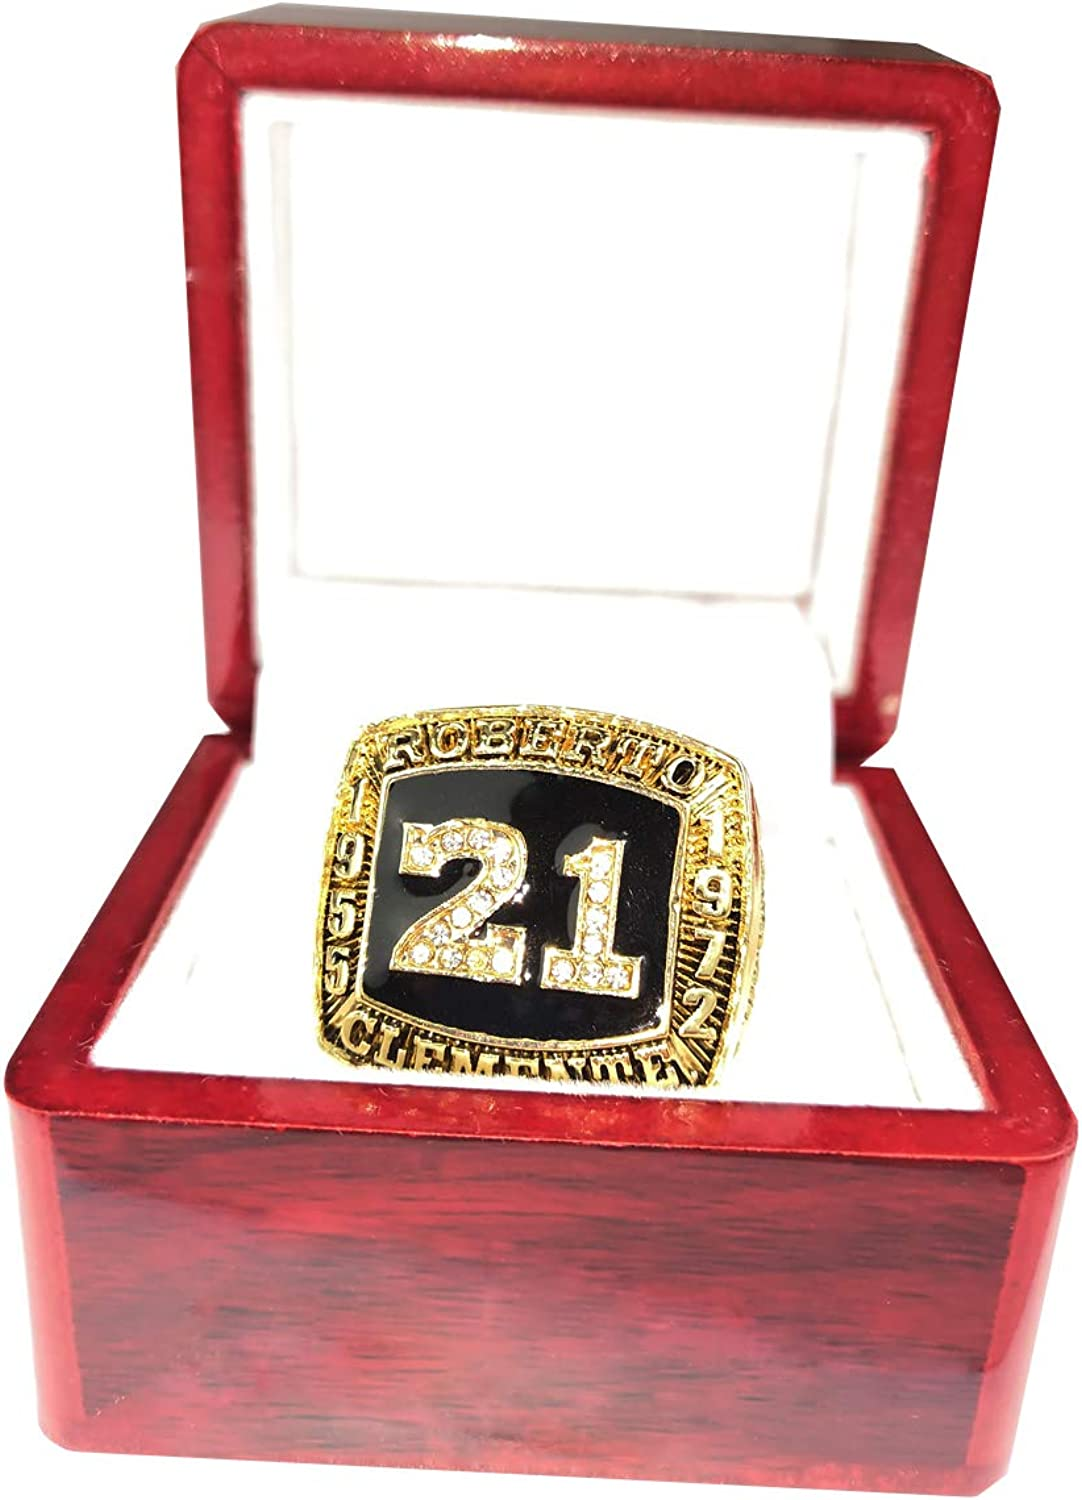 RongJ store Robert Clemente 1955 to 1972 Basketball Championship Ring Cherrywood Display case